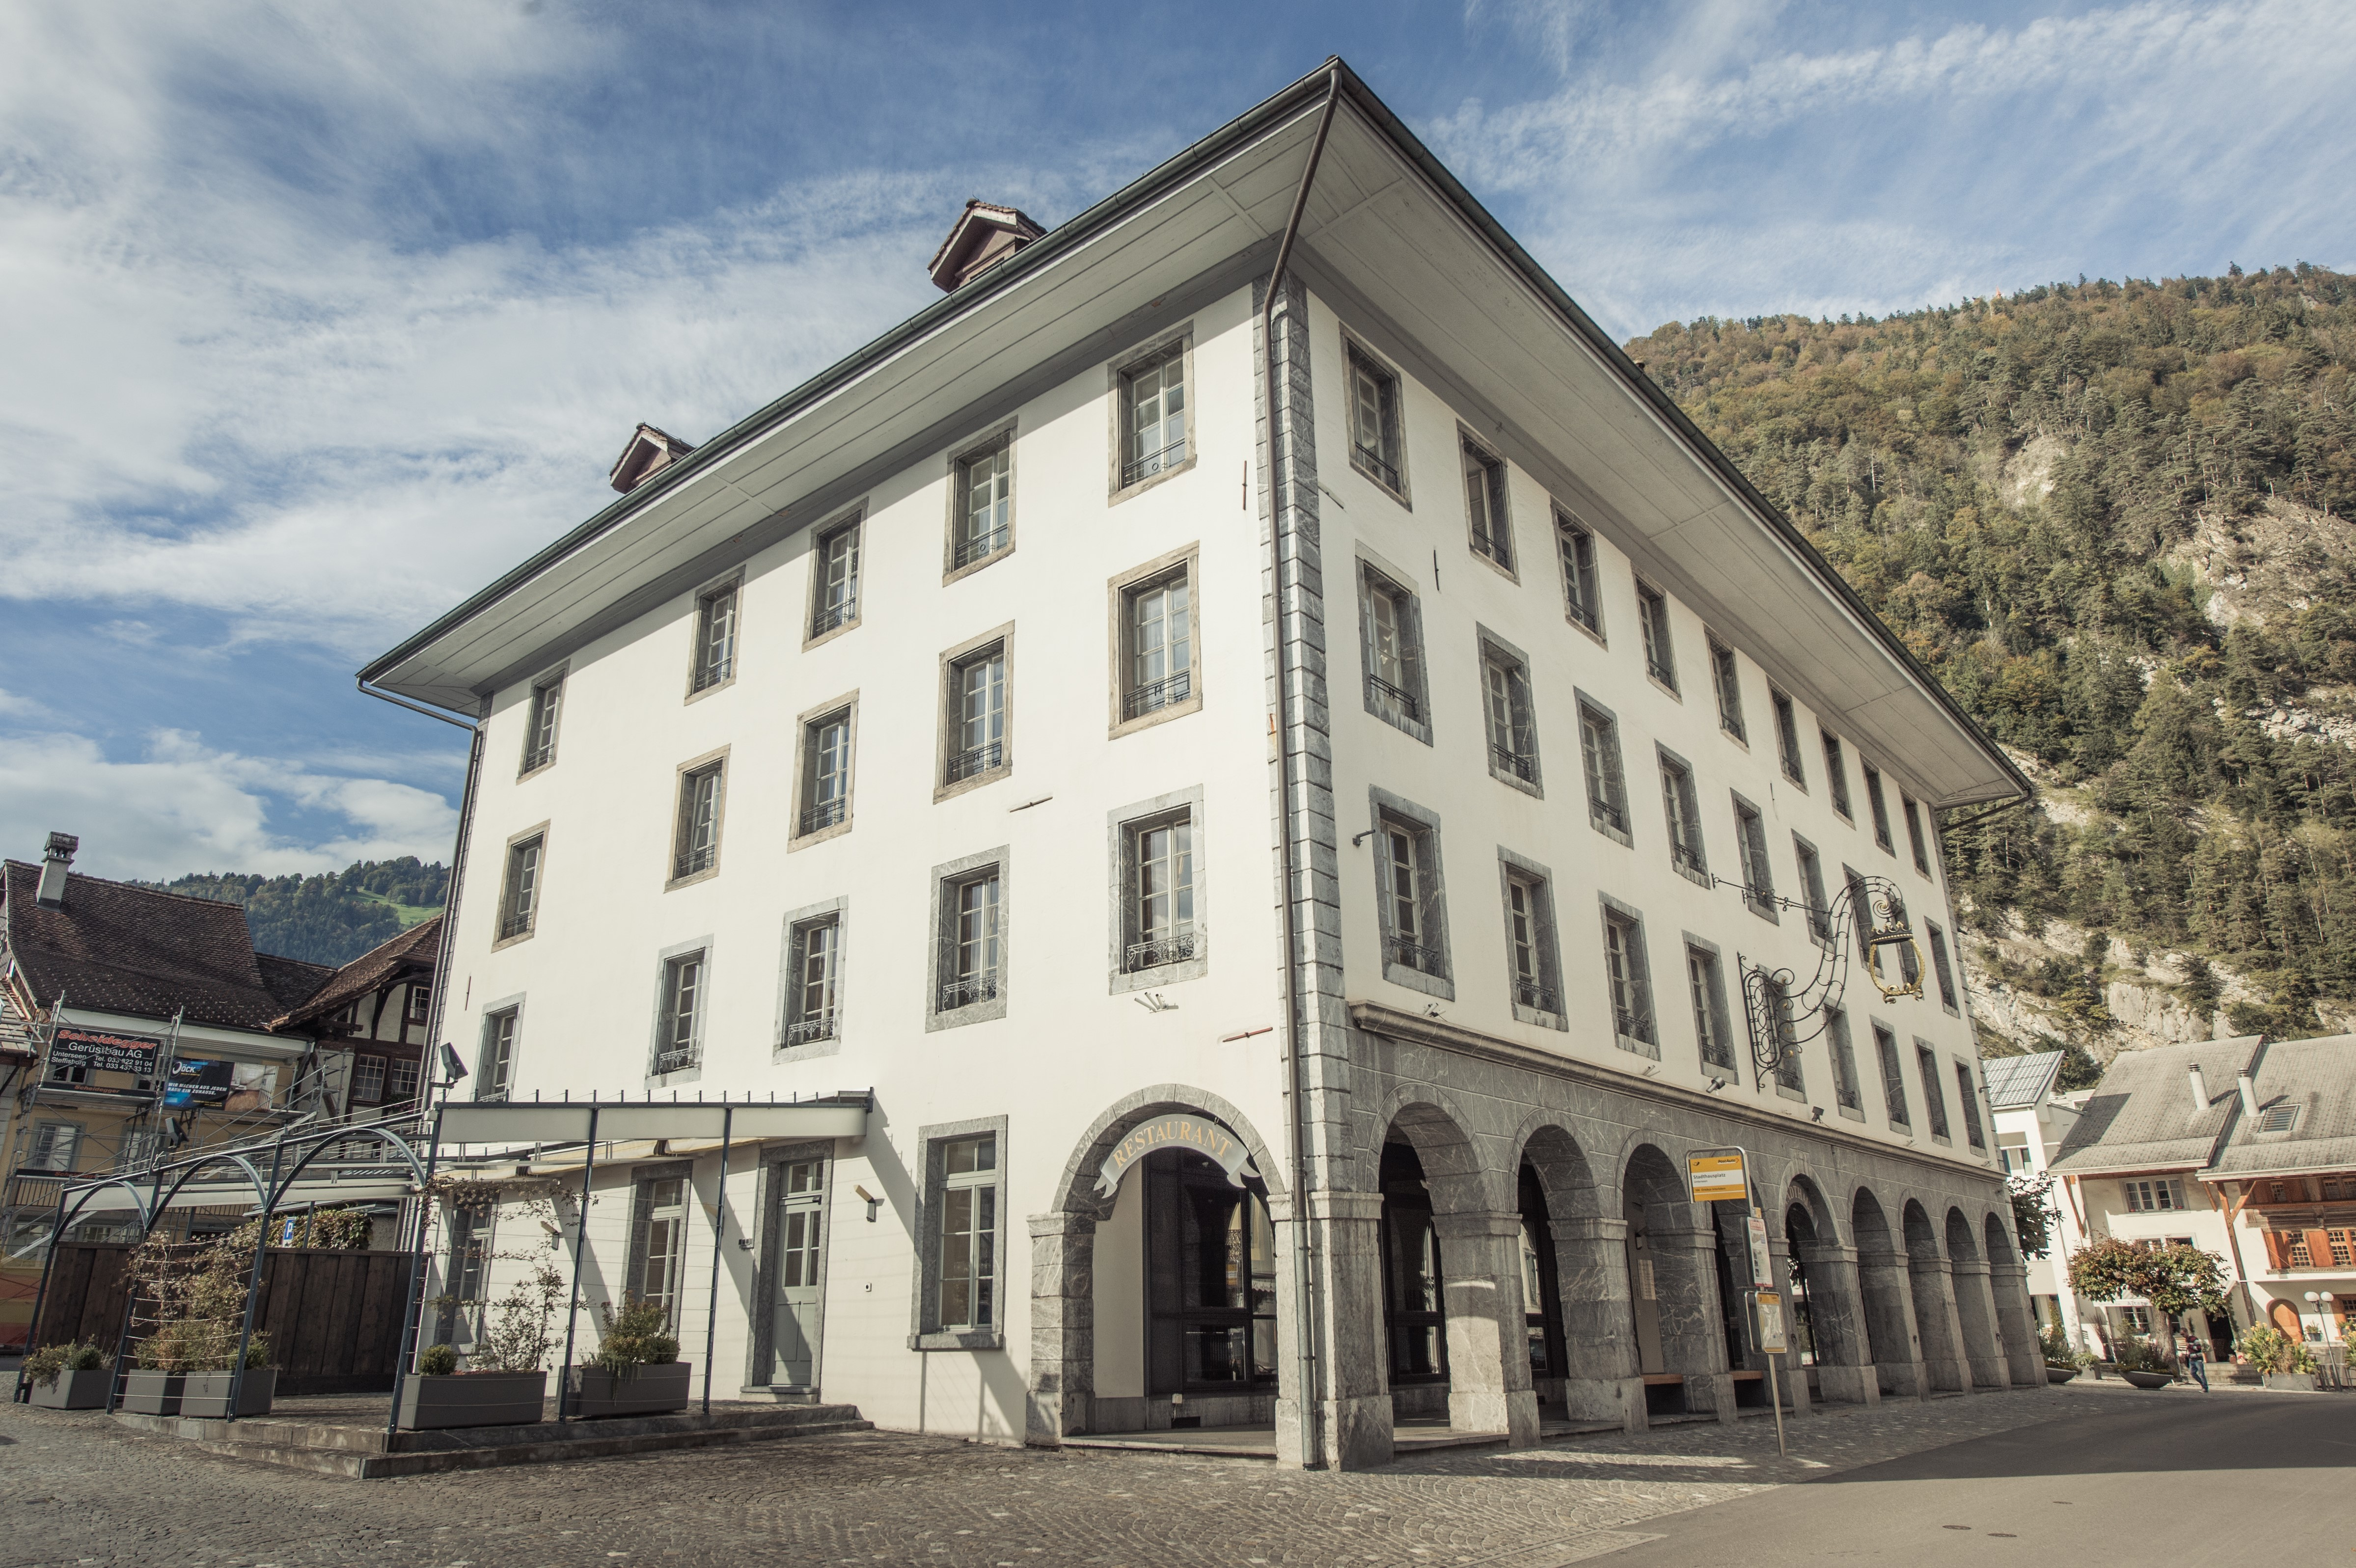 Stadthaus - Interlaken